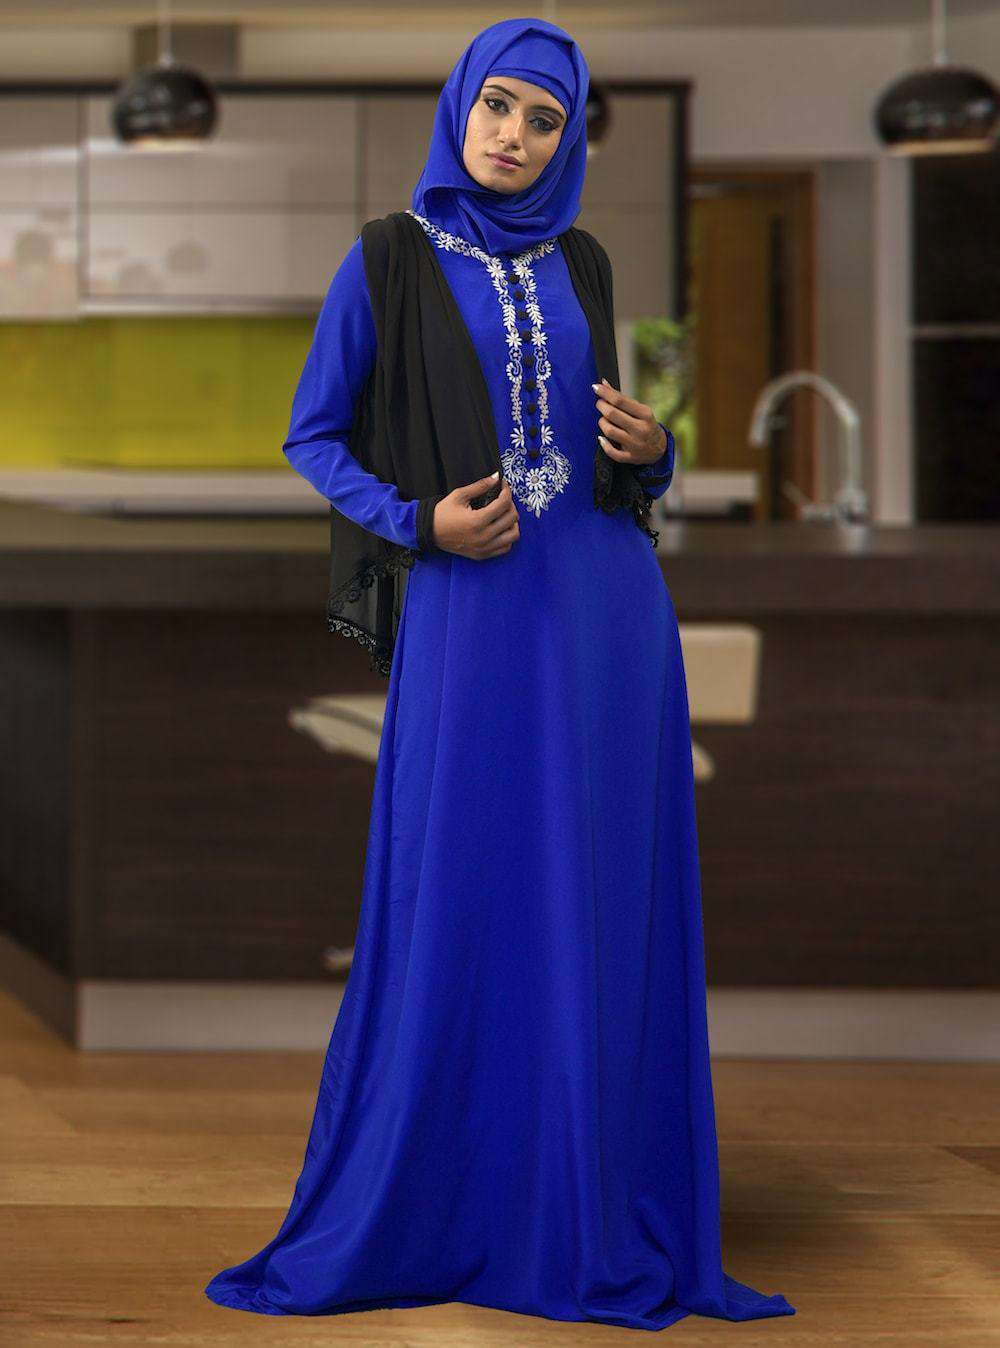 Modest Muslim Women Evening Black & Blue Islamic Dress MYPF1411